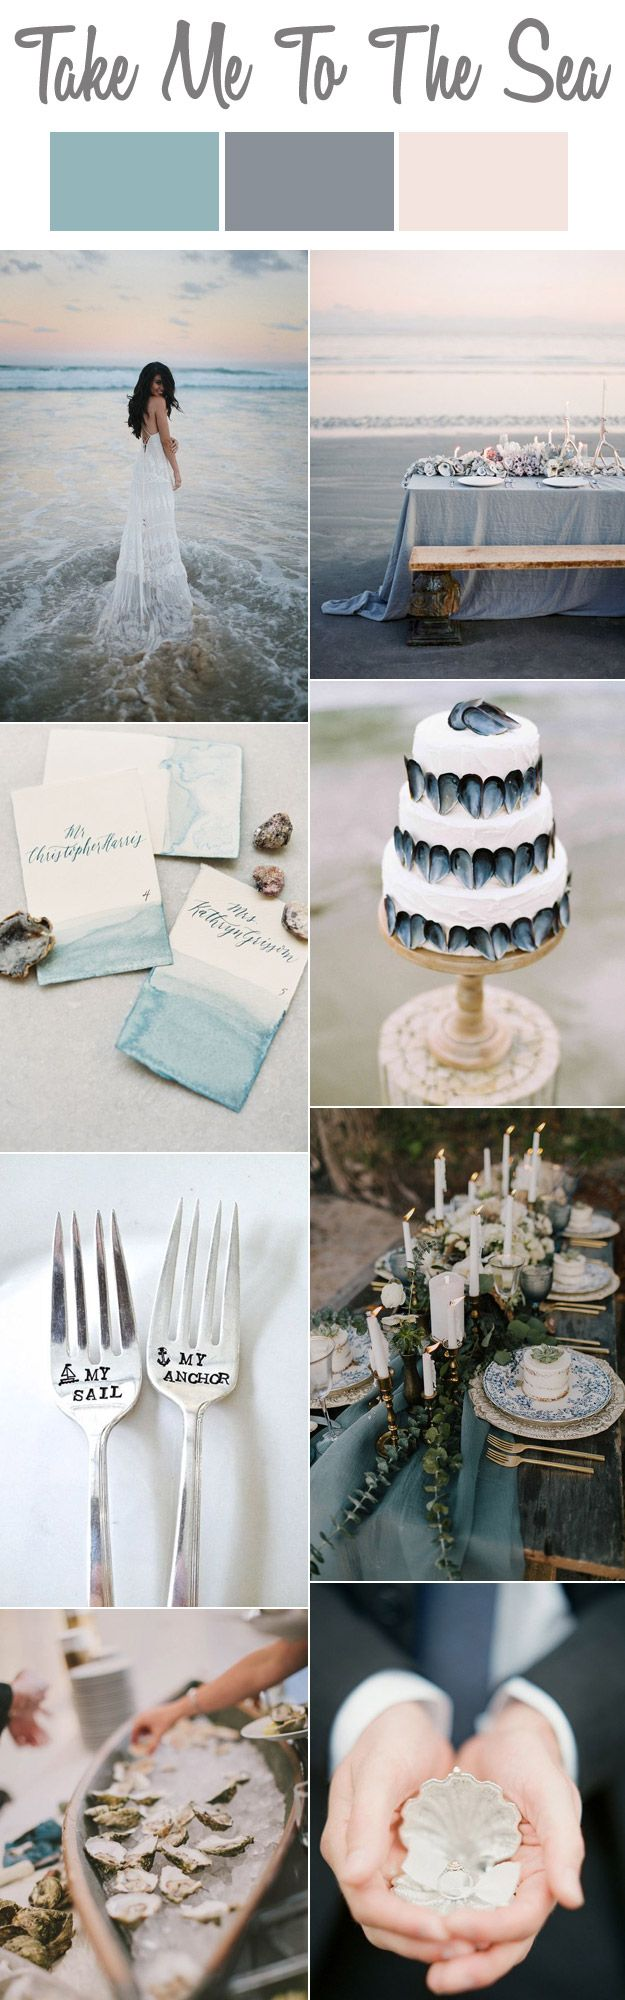 Me To The Sea: A Pastel Seaside Wedding Story    Lucky in Love Blog